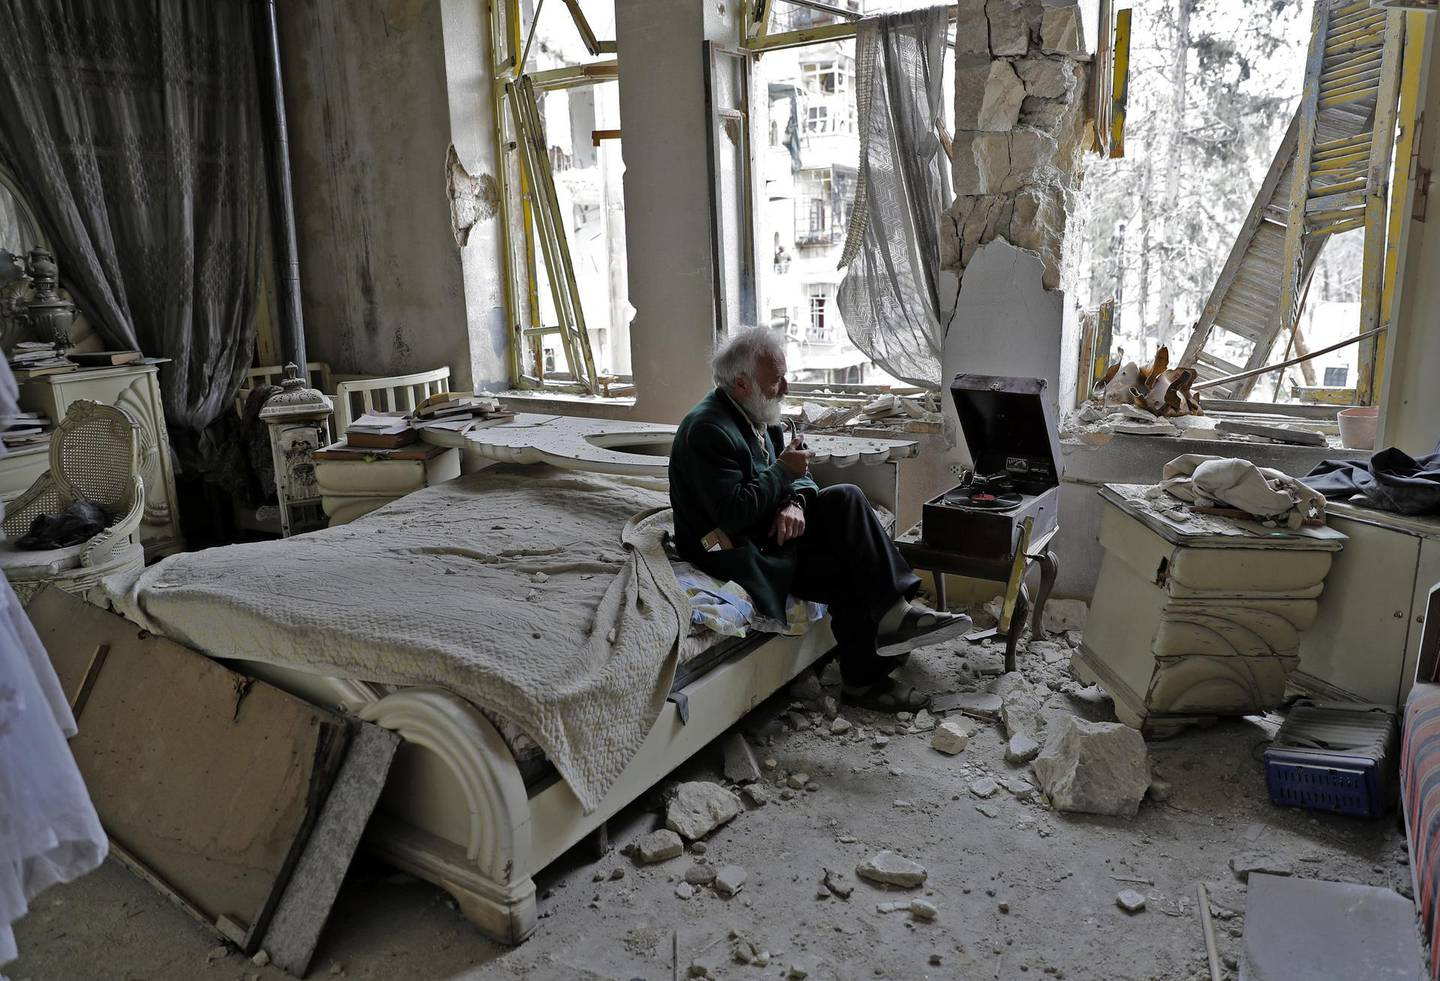 Mohammed Mohiedin Anis, or Abu Omar, 70, smokes his pipe as he sits in his destroyed bedroom listening to music on his vinyl player, gramophone, in Aleppo's formerly rebel-held al-Shaar neighbourhood. (Photo by JOSEPH EID / AFP)